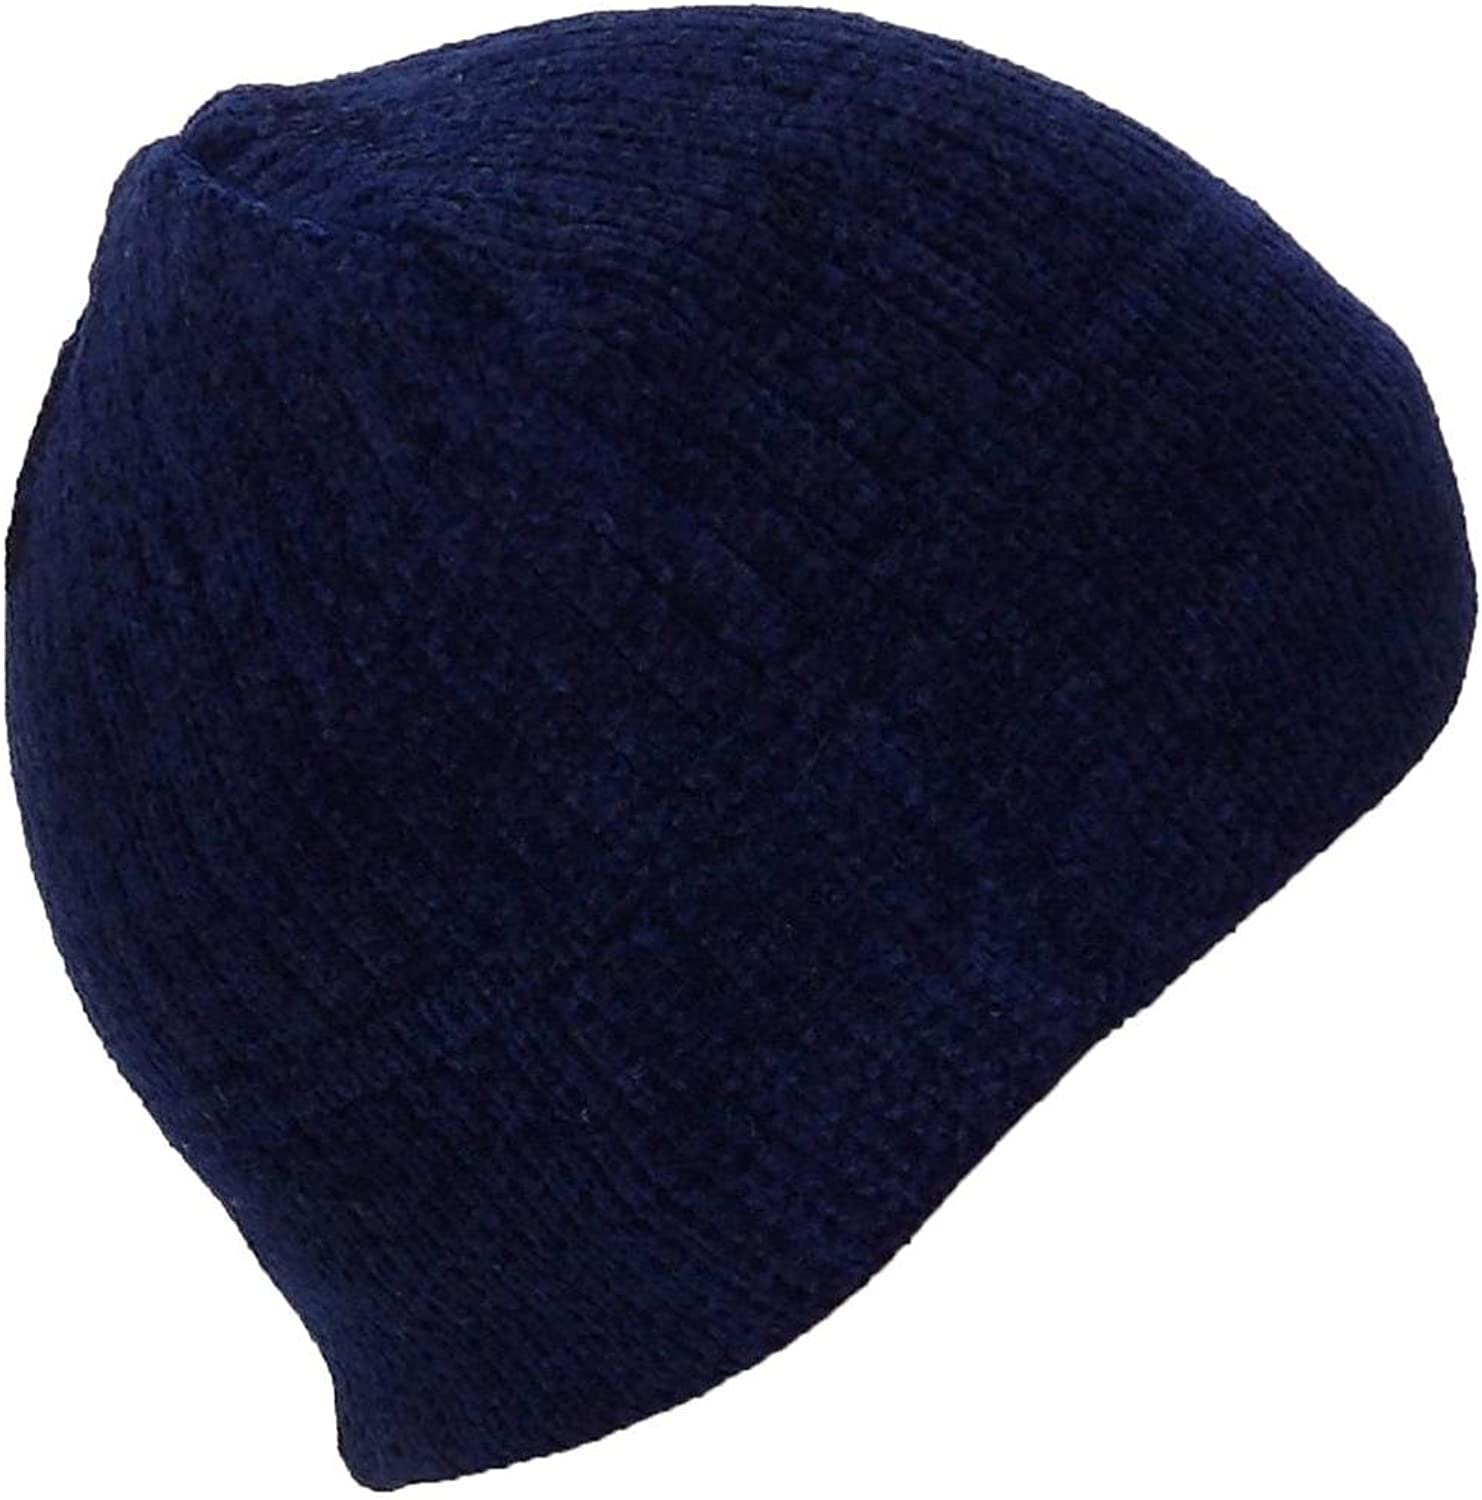 Best Winter Hats Women Chenille Solid Skull Cap W Fleece Lining(Small)